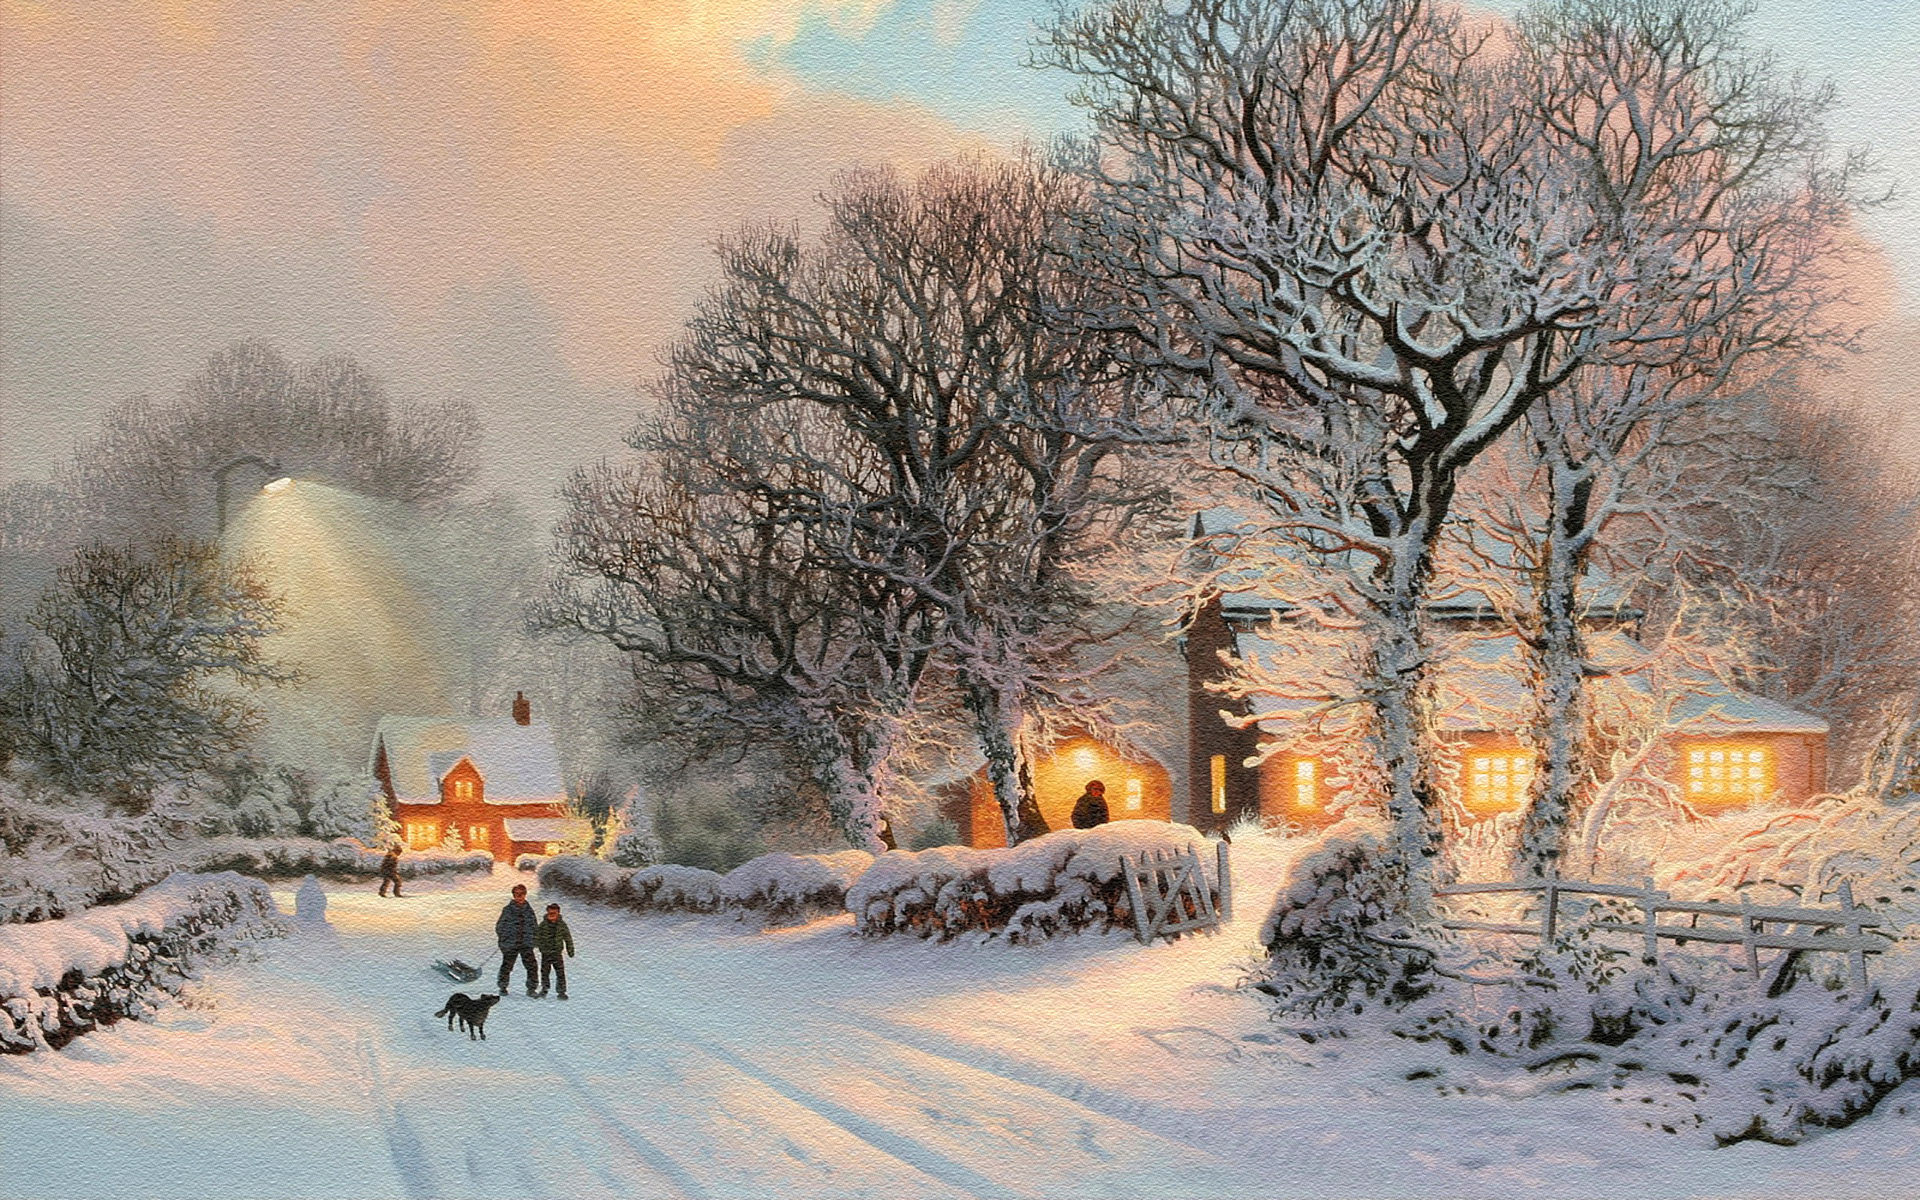 download Winter Wallpaper 22 [1920x1200] for your Desktop 1920x1200